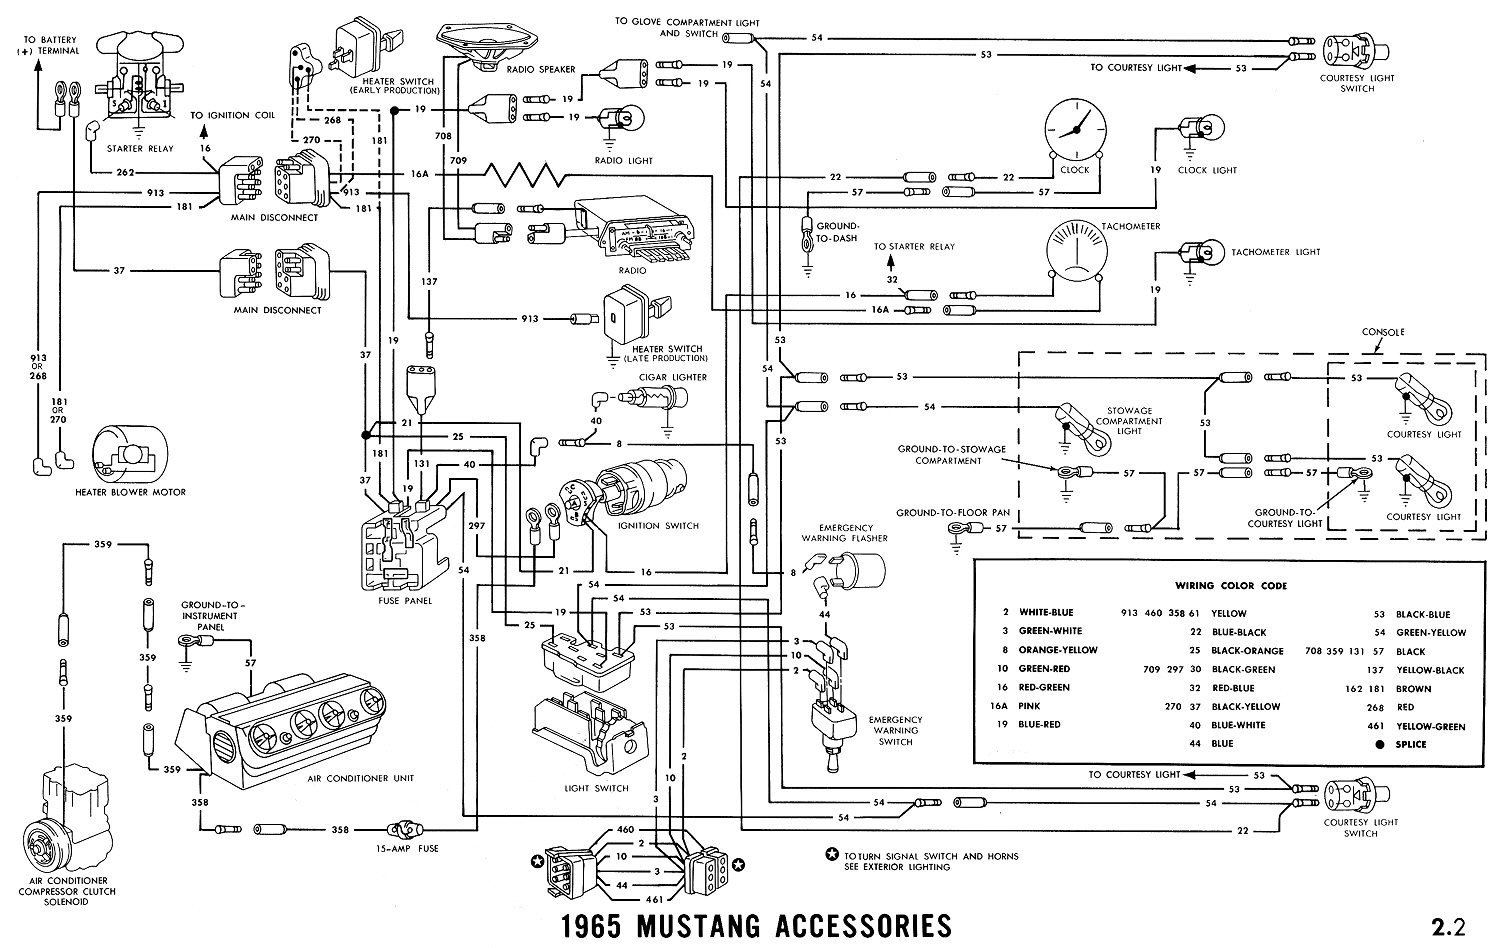 1965i 1965 mustang wiring diagrams average joe restoration 1967 mustang ignition wiring diagram at gsmx.co